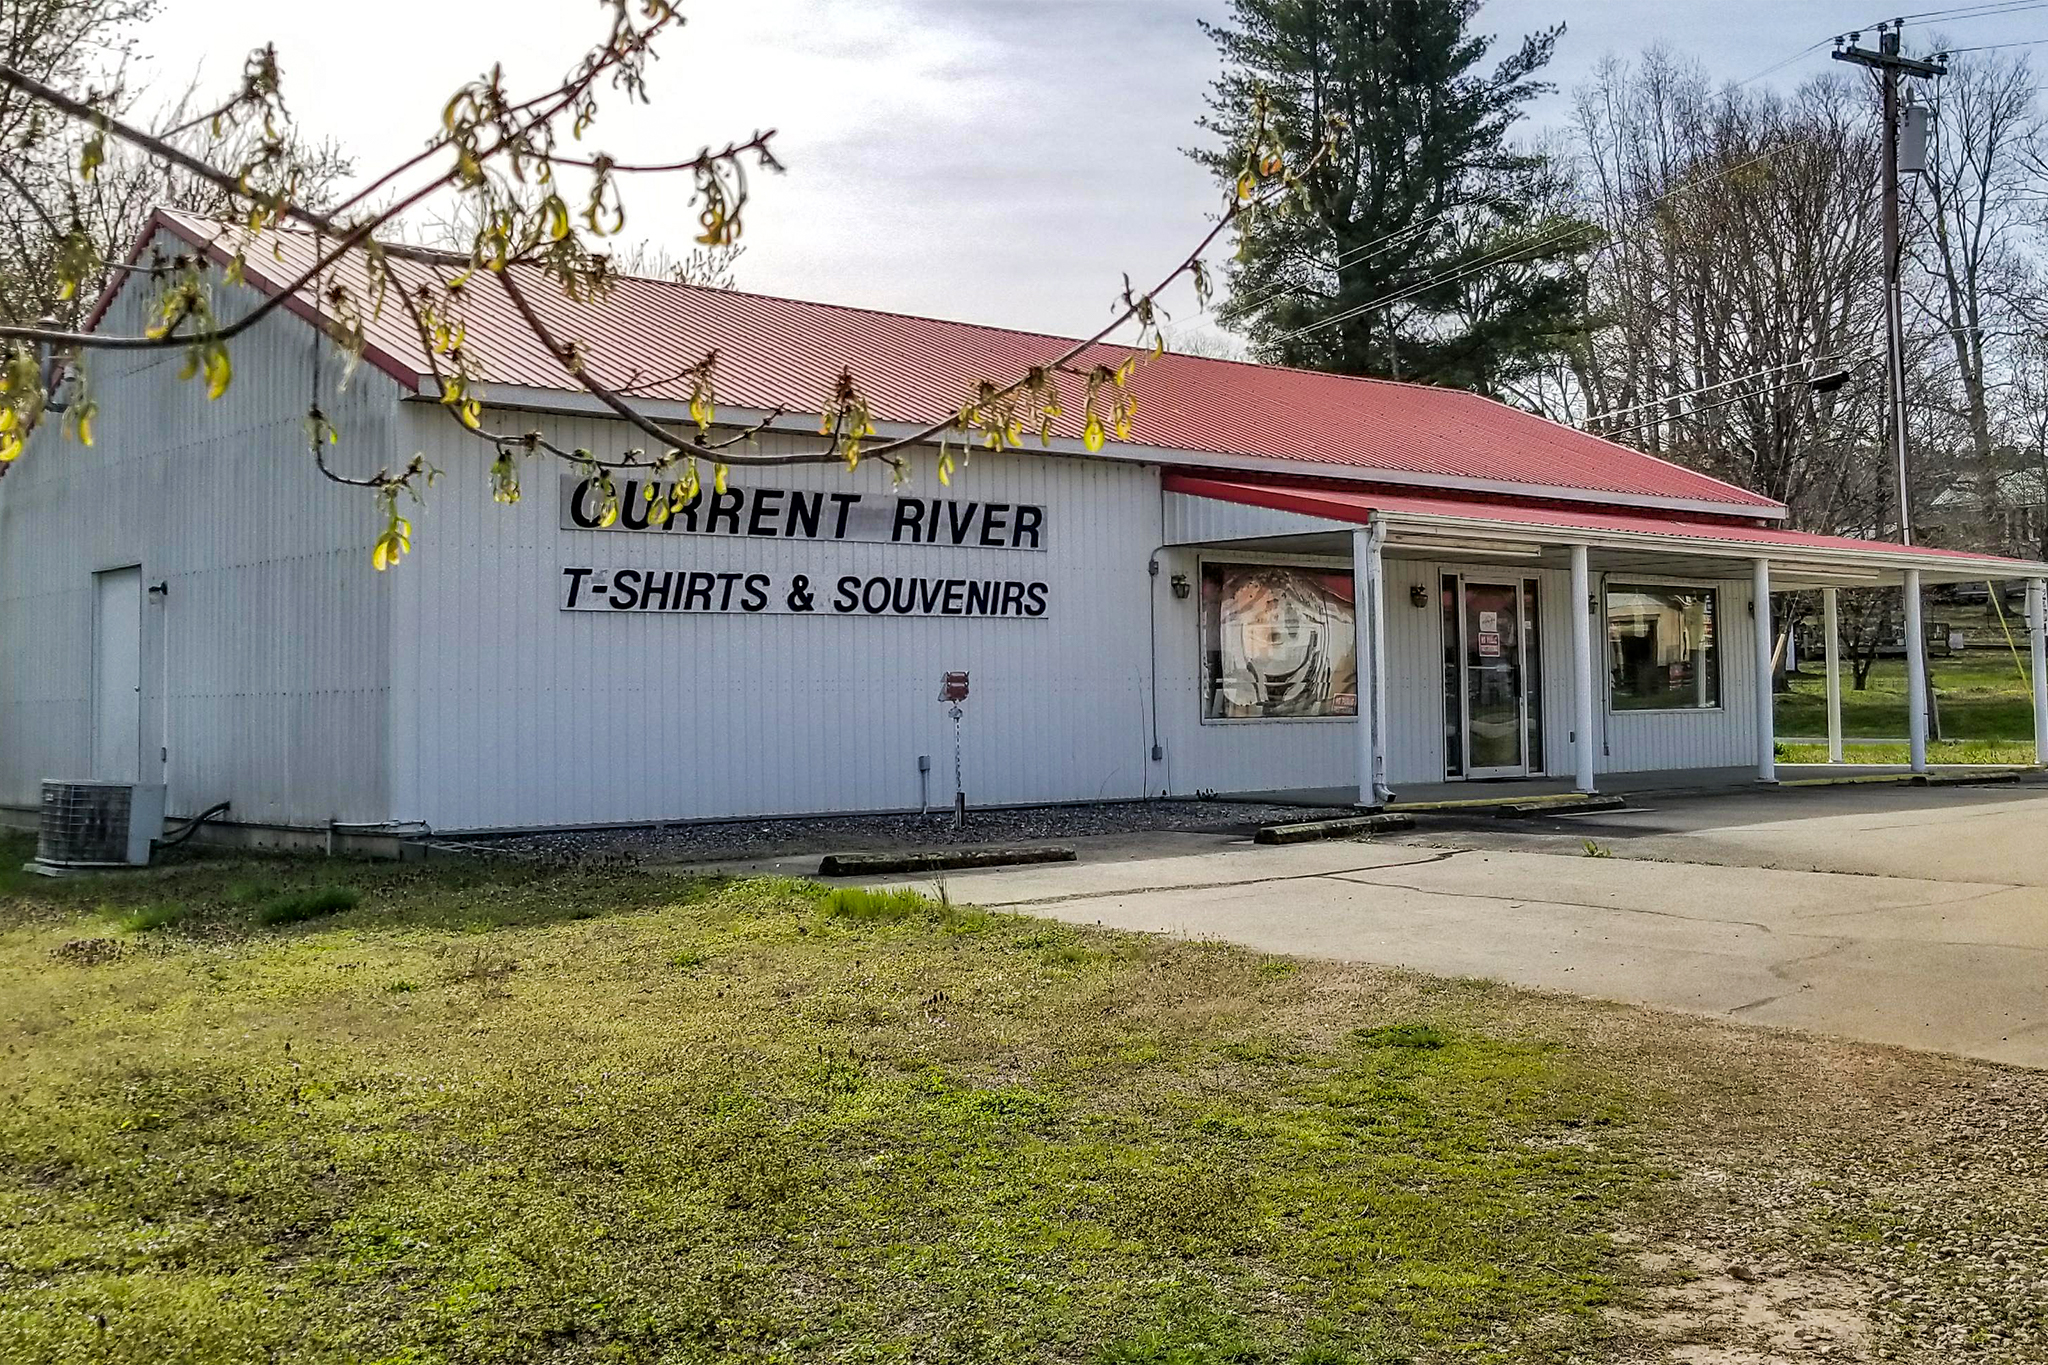 Current RiverT-Shirts & Souvenirs  - Make sure you stop for a souvenir of your time at Current River! The shop offers full service custom t-shirts, floating supplies, water shoes and more.